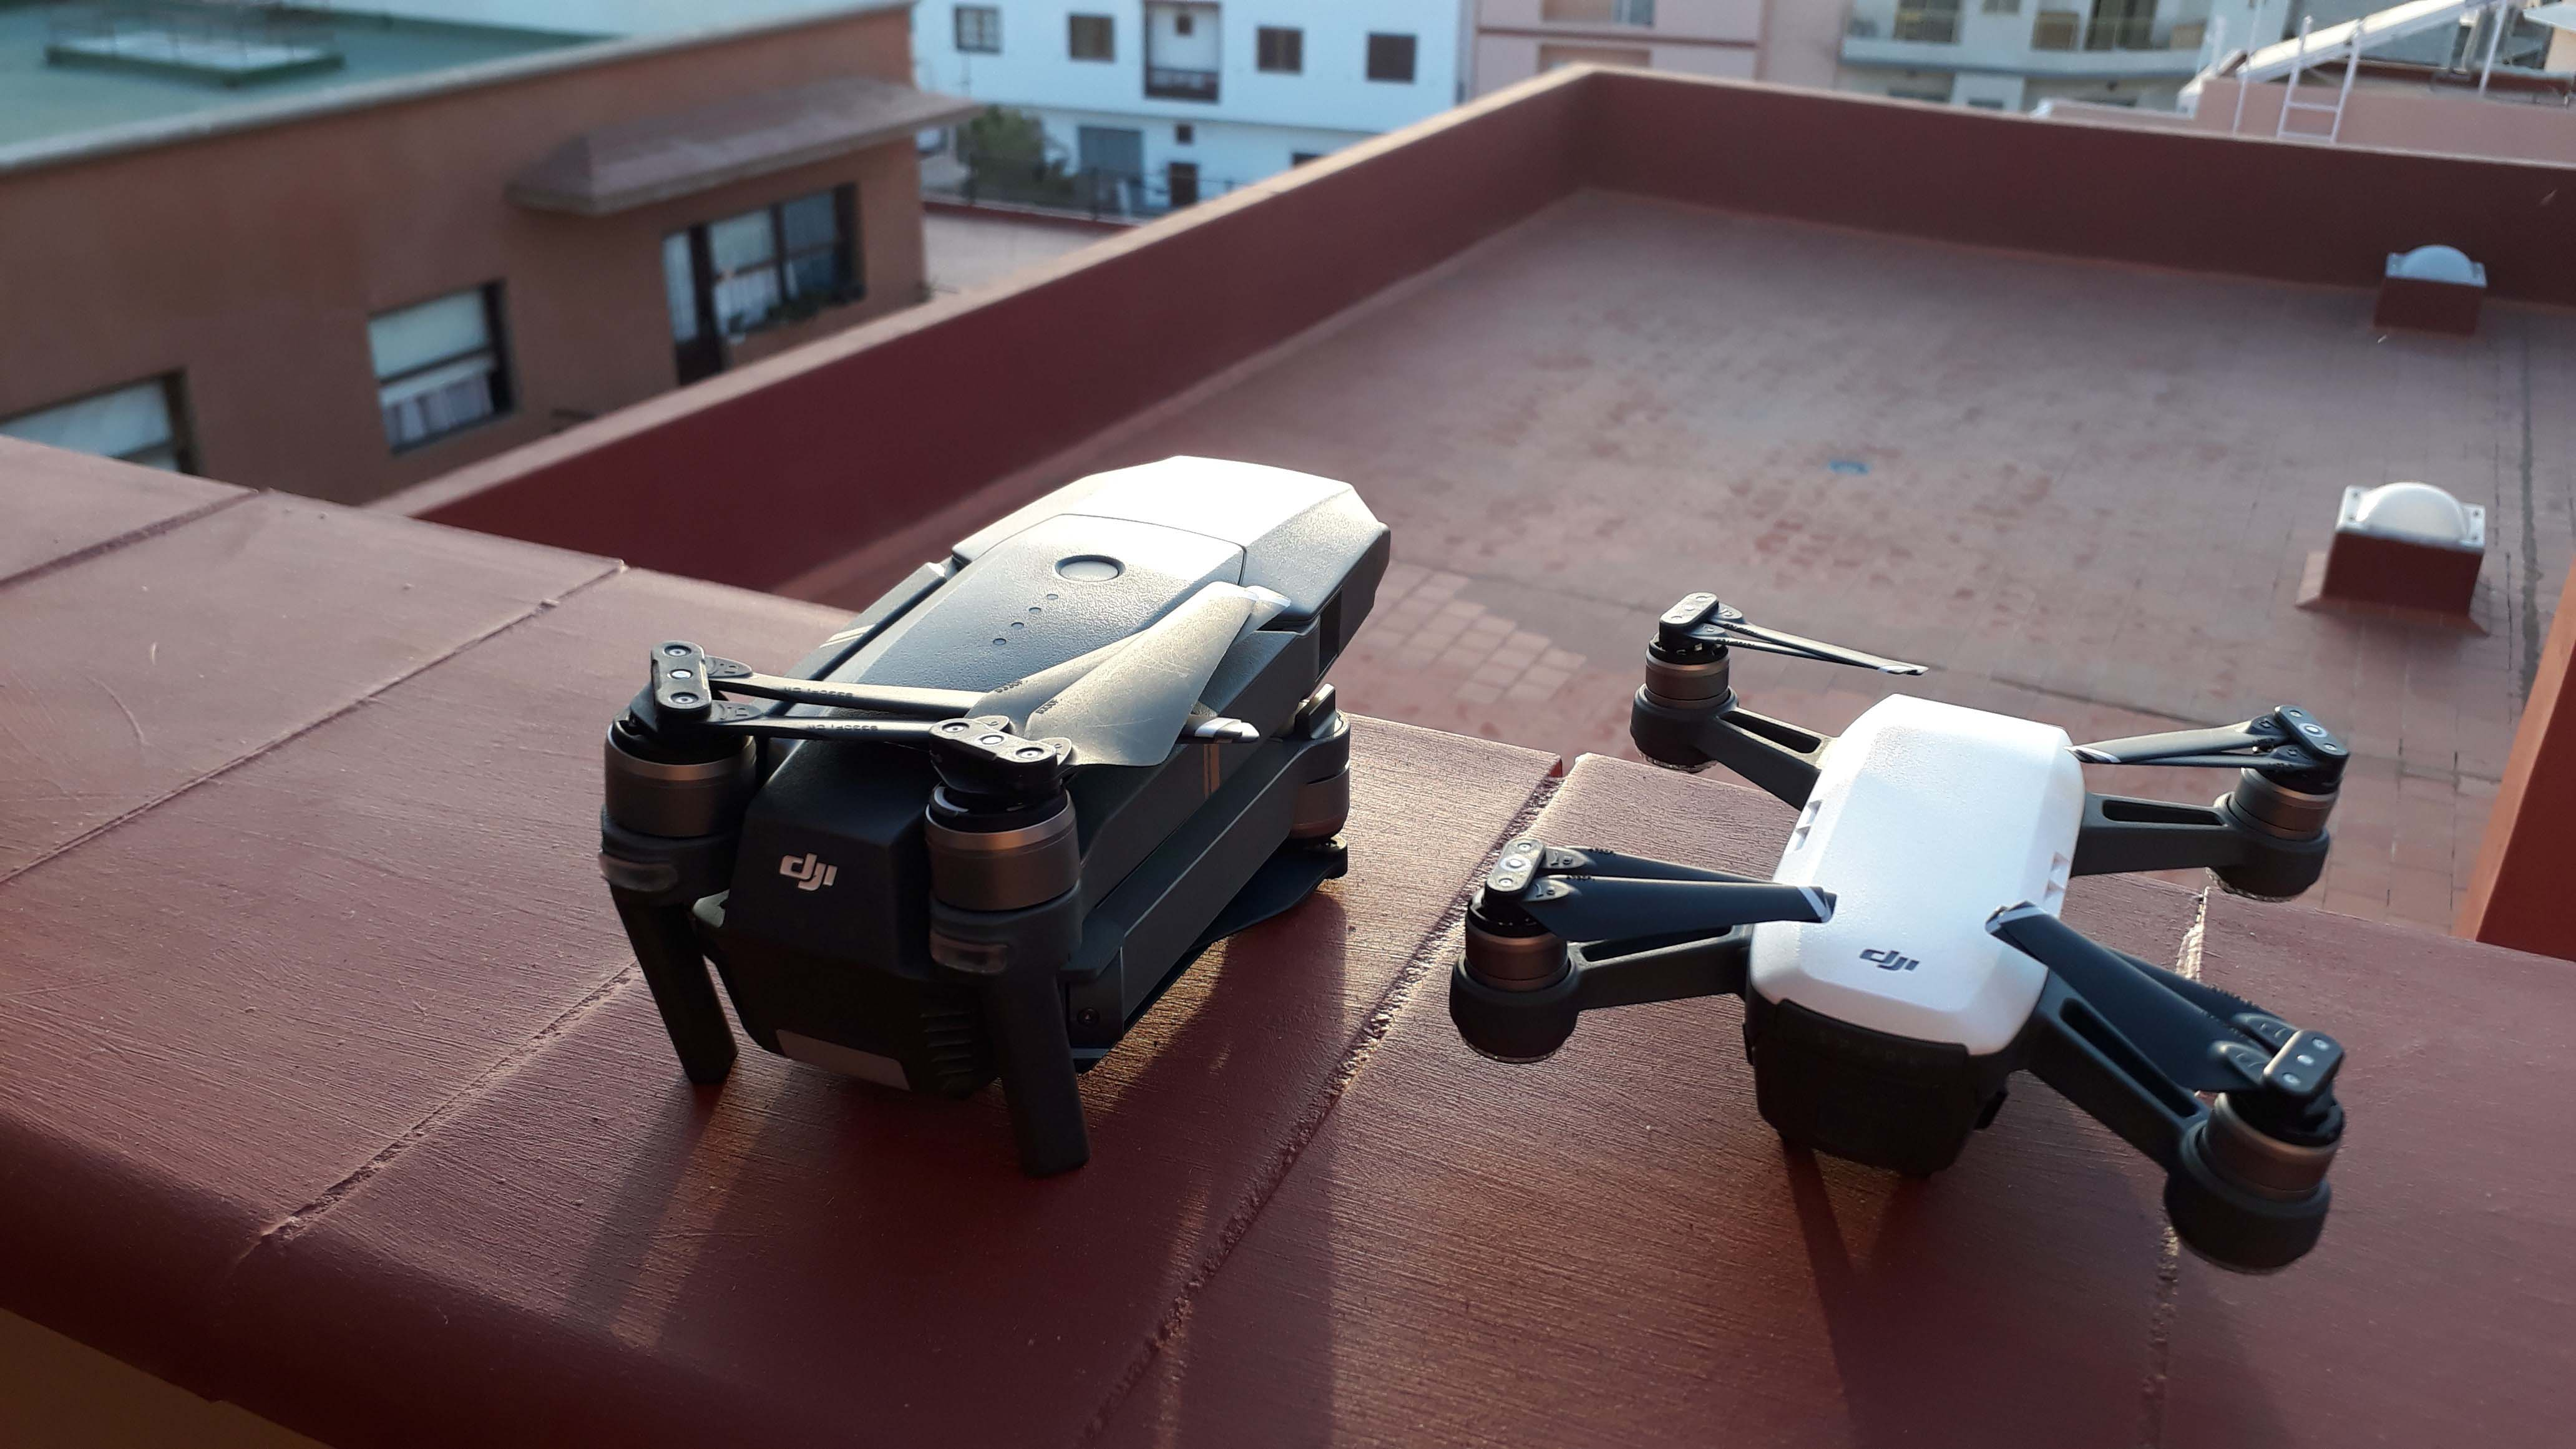 Whos Going To Do The Race Collapsible DJI Mavic Pro Or Compact